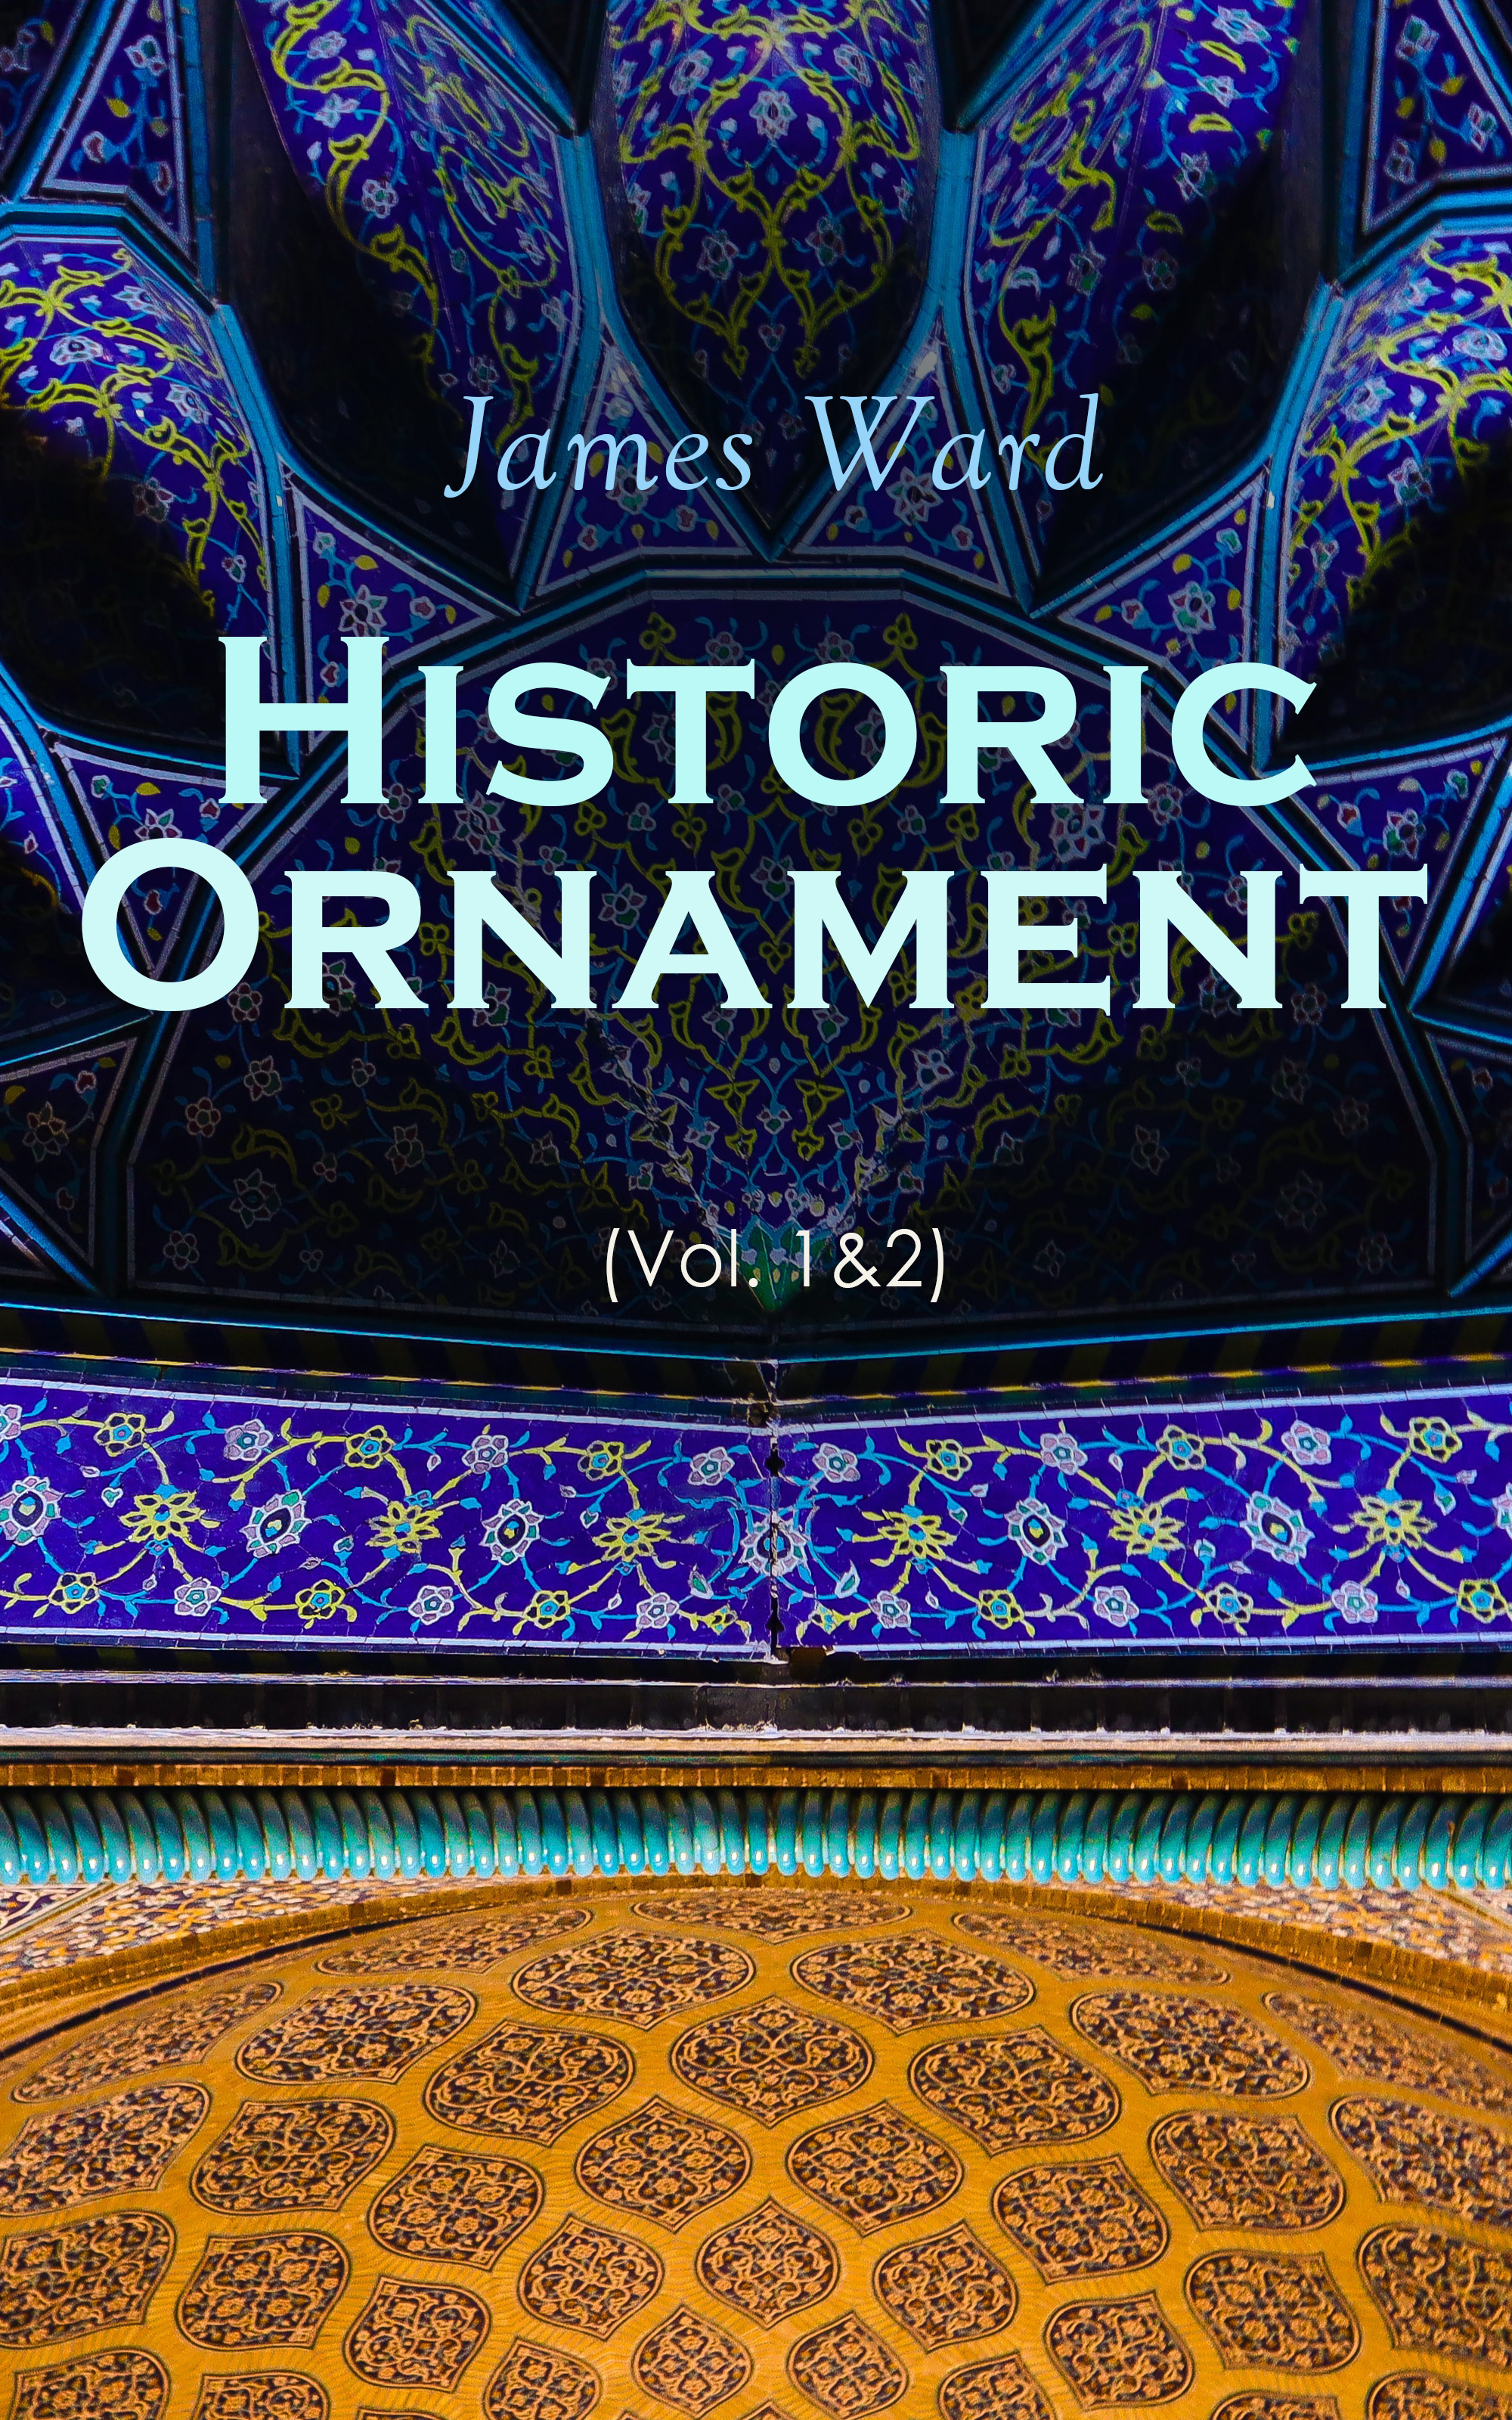 James M Ward Historic Ornament (Vol. 1&2)